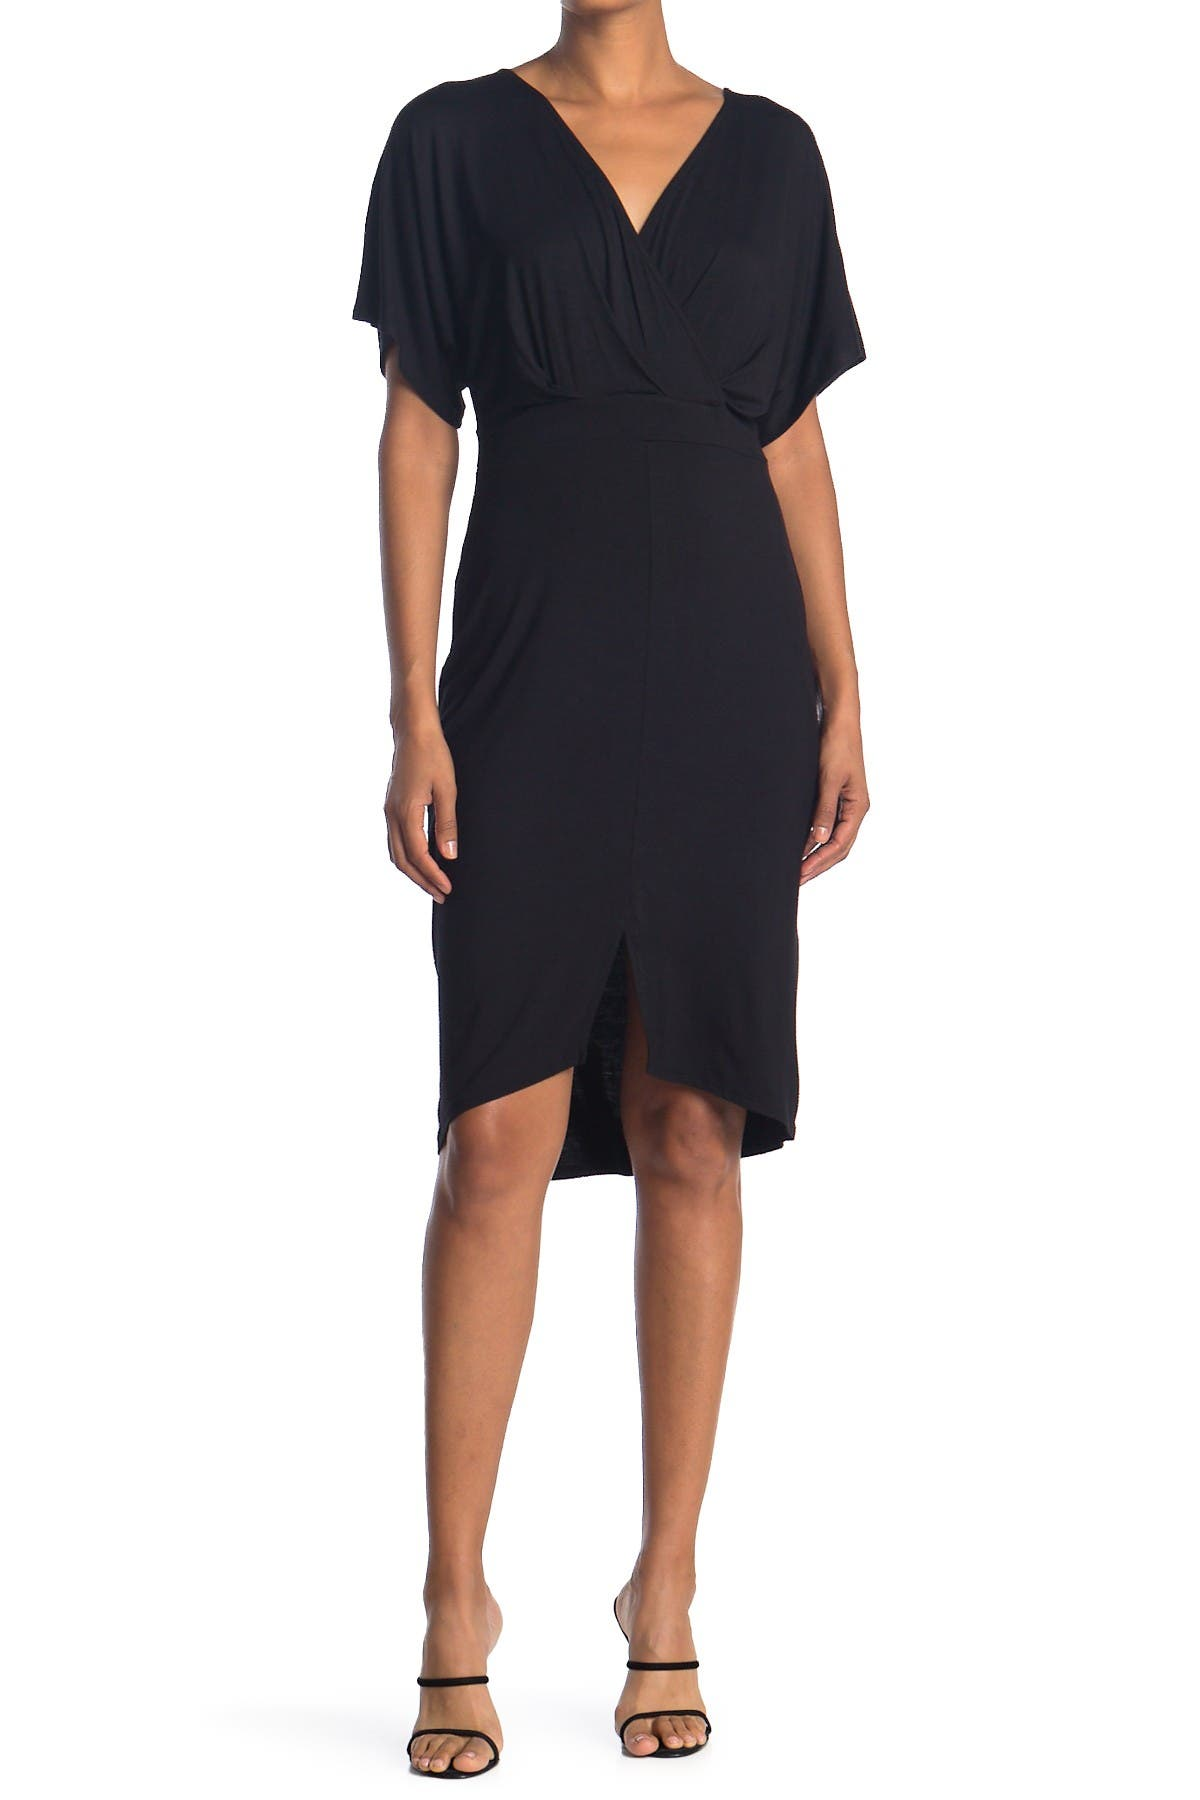 Image of WEST KEI Surplice Short Sleeve Jersey Sheath Dress